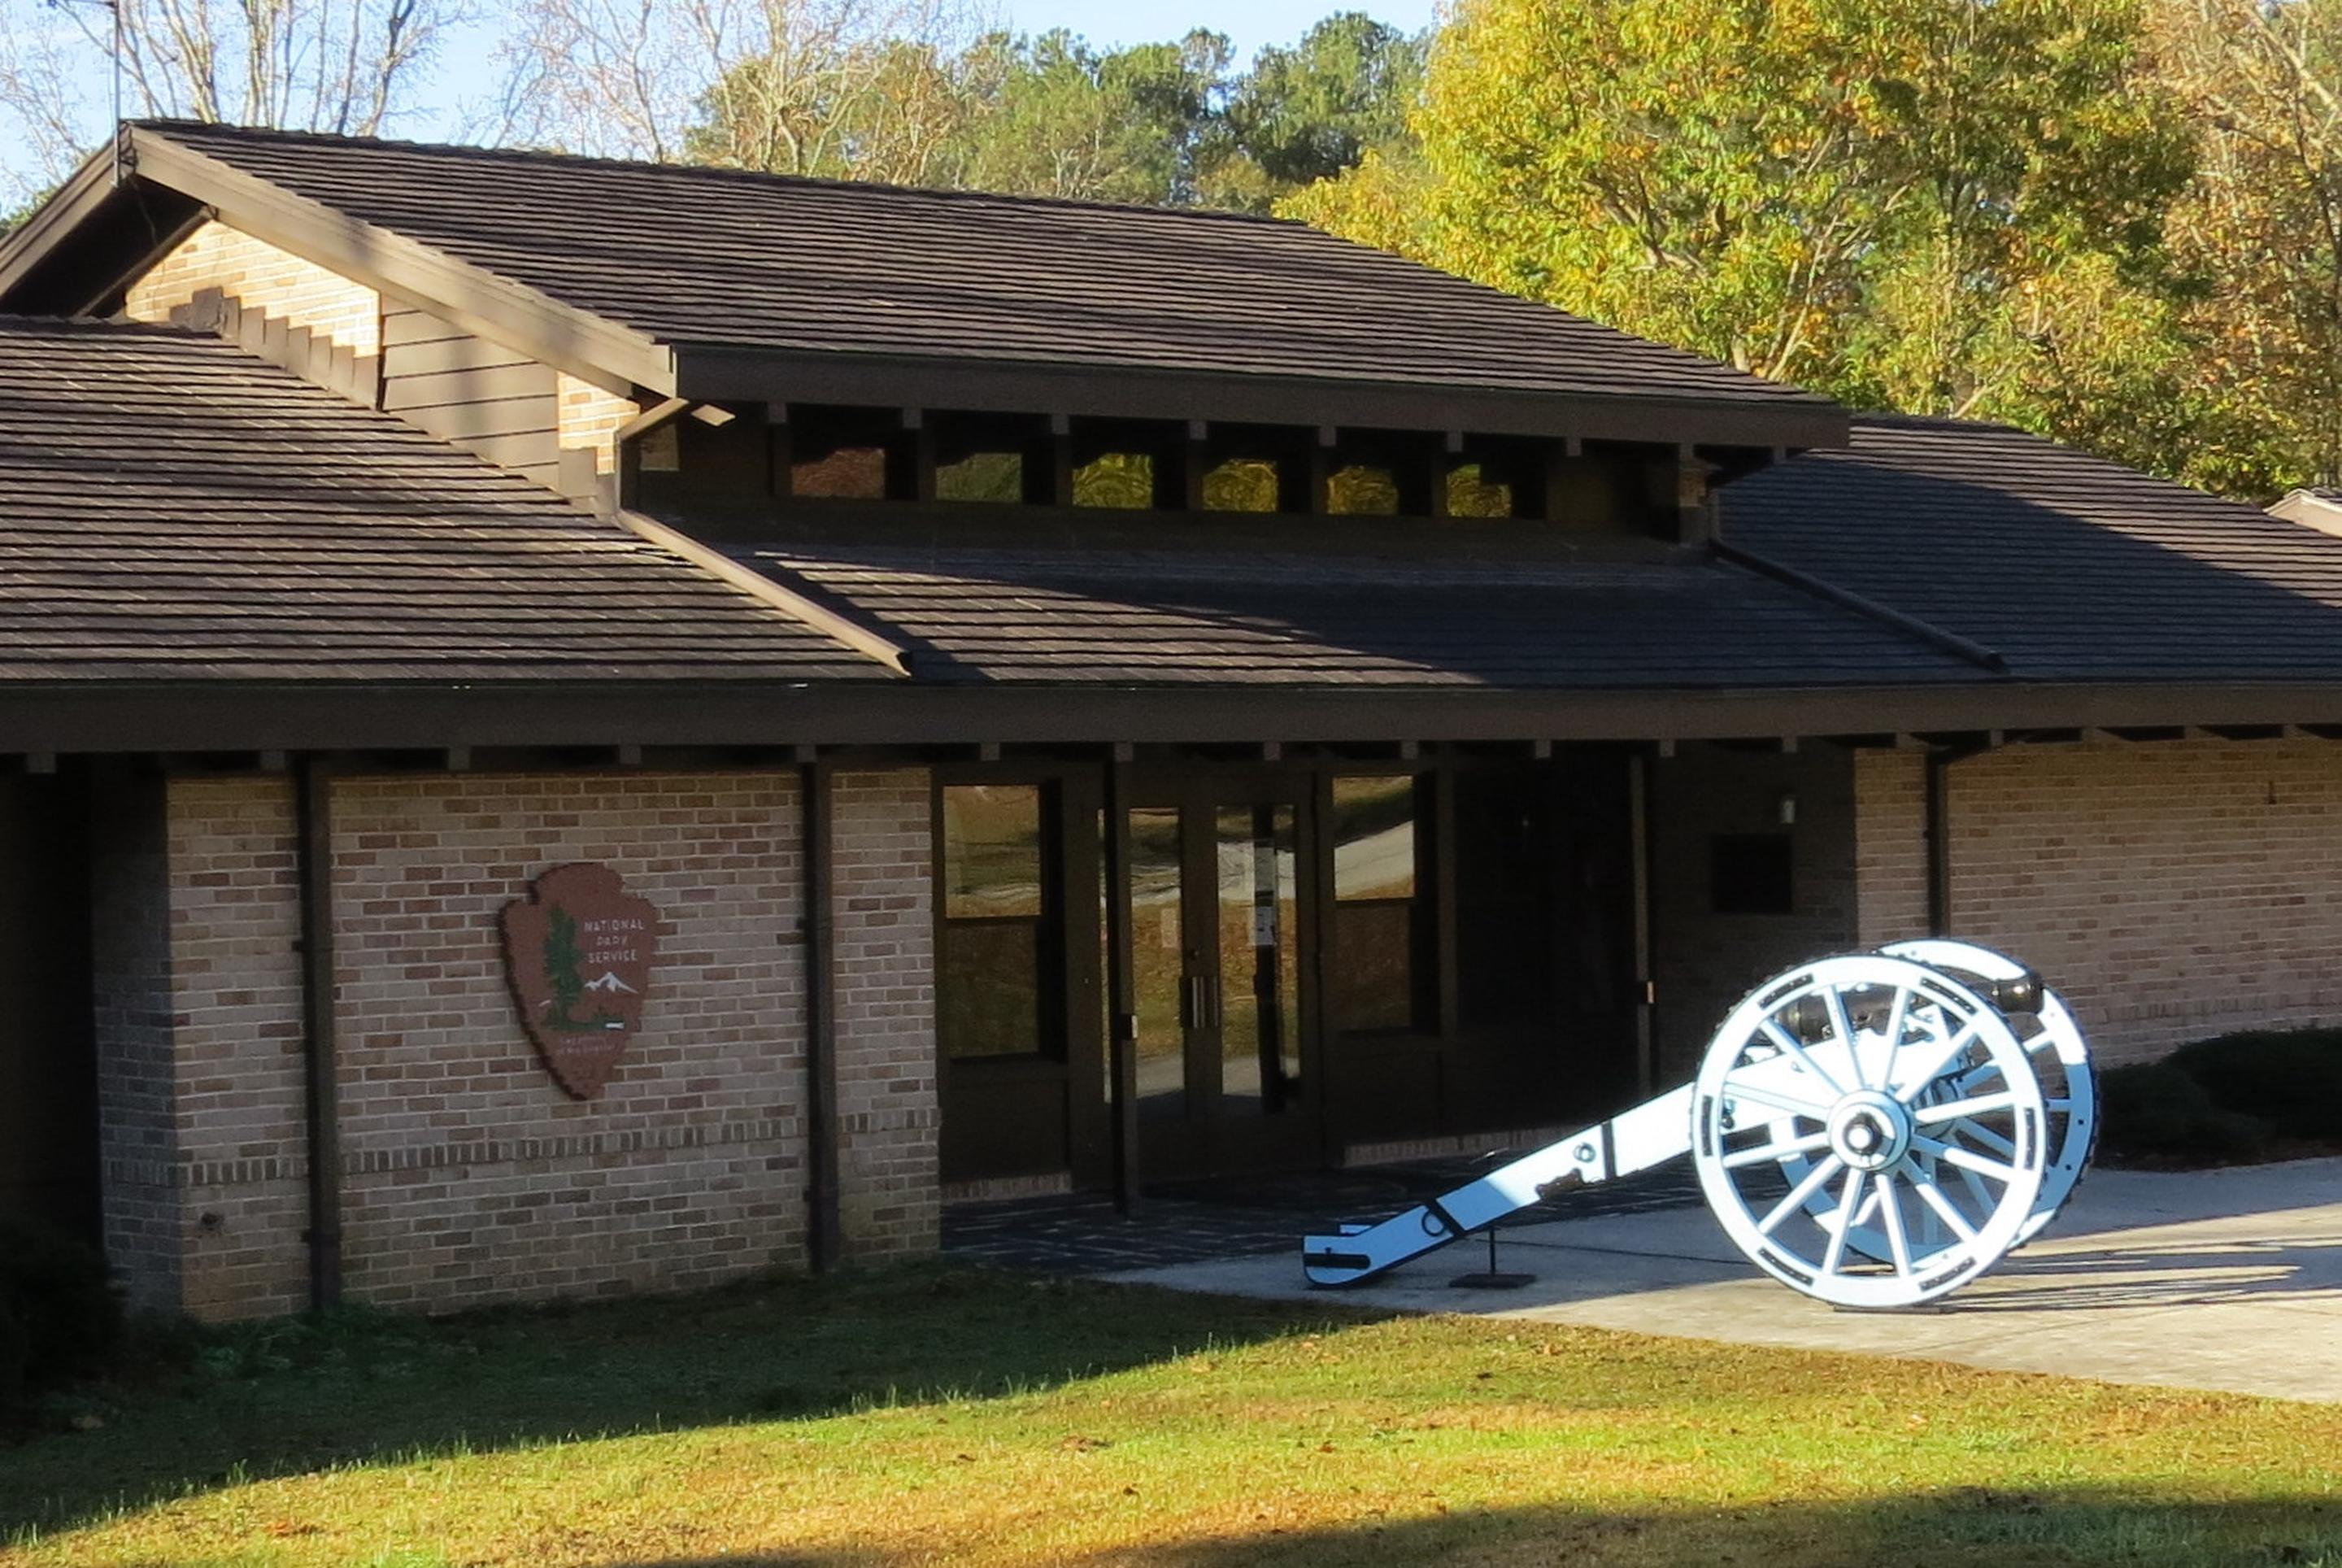 Visitor CenterThe Horseshoe Bend NMP's Mission 66 Visitor Center with 1812 era 3-pounder cannon.